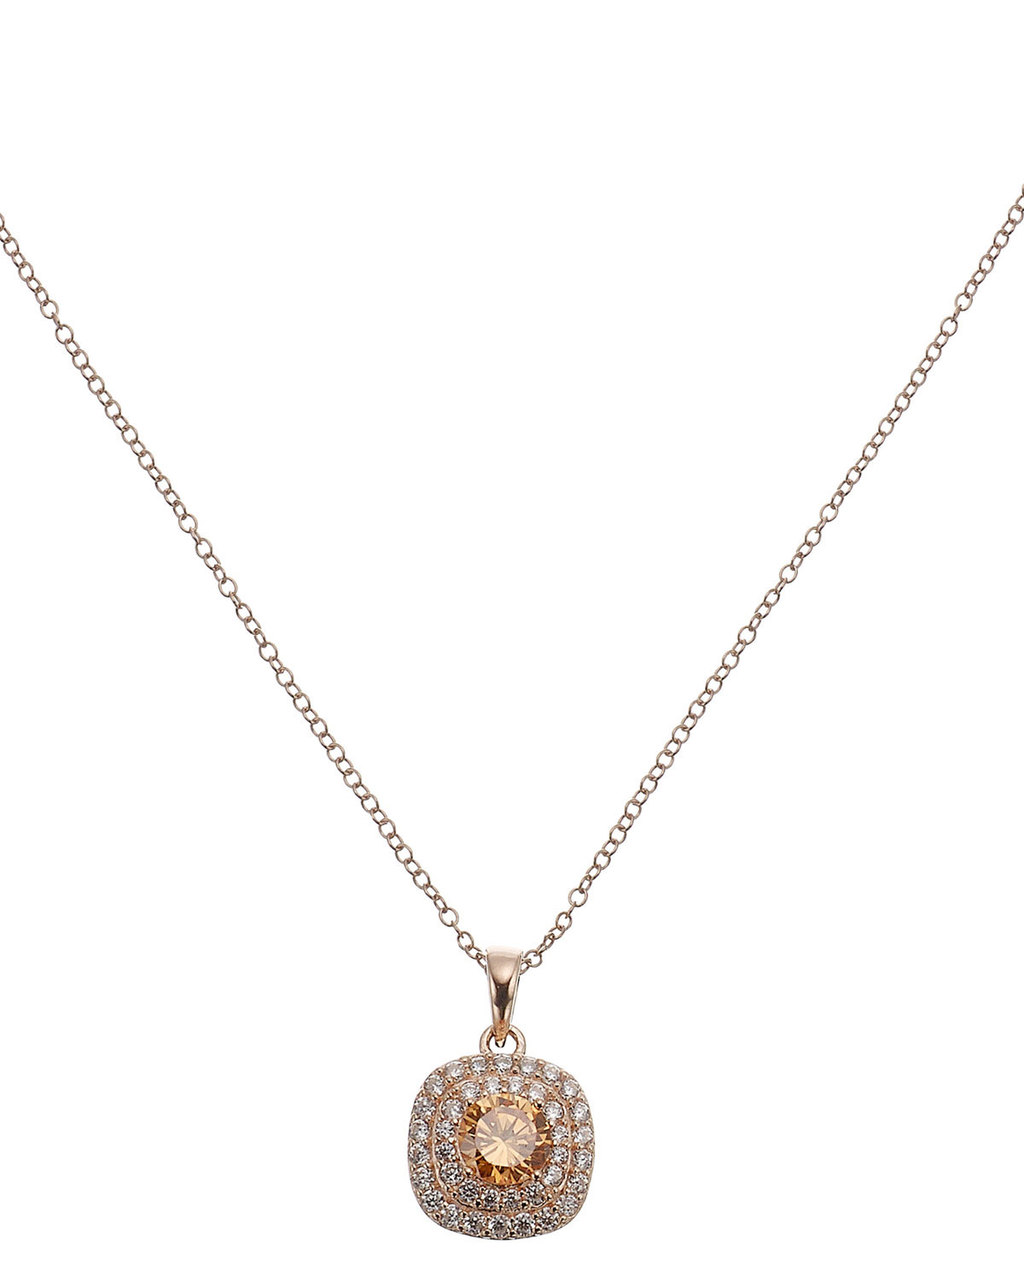 Rose Halo Pendant - predominant colour: gold; occasions: evening, occasion; style: pendant; length: mid; size: small/fine; material: chain/metal; finish: metallic; embellishment: jewels/stone; season: s/s 2016; wardrobe: event